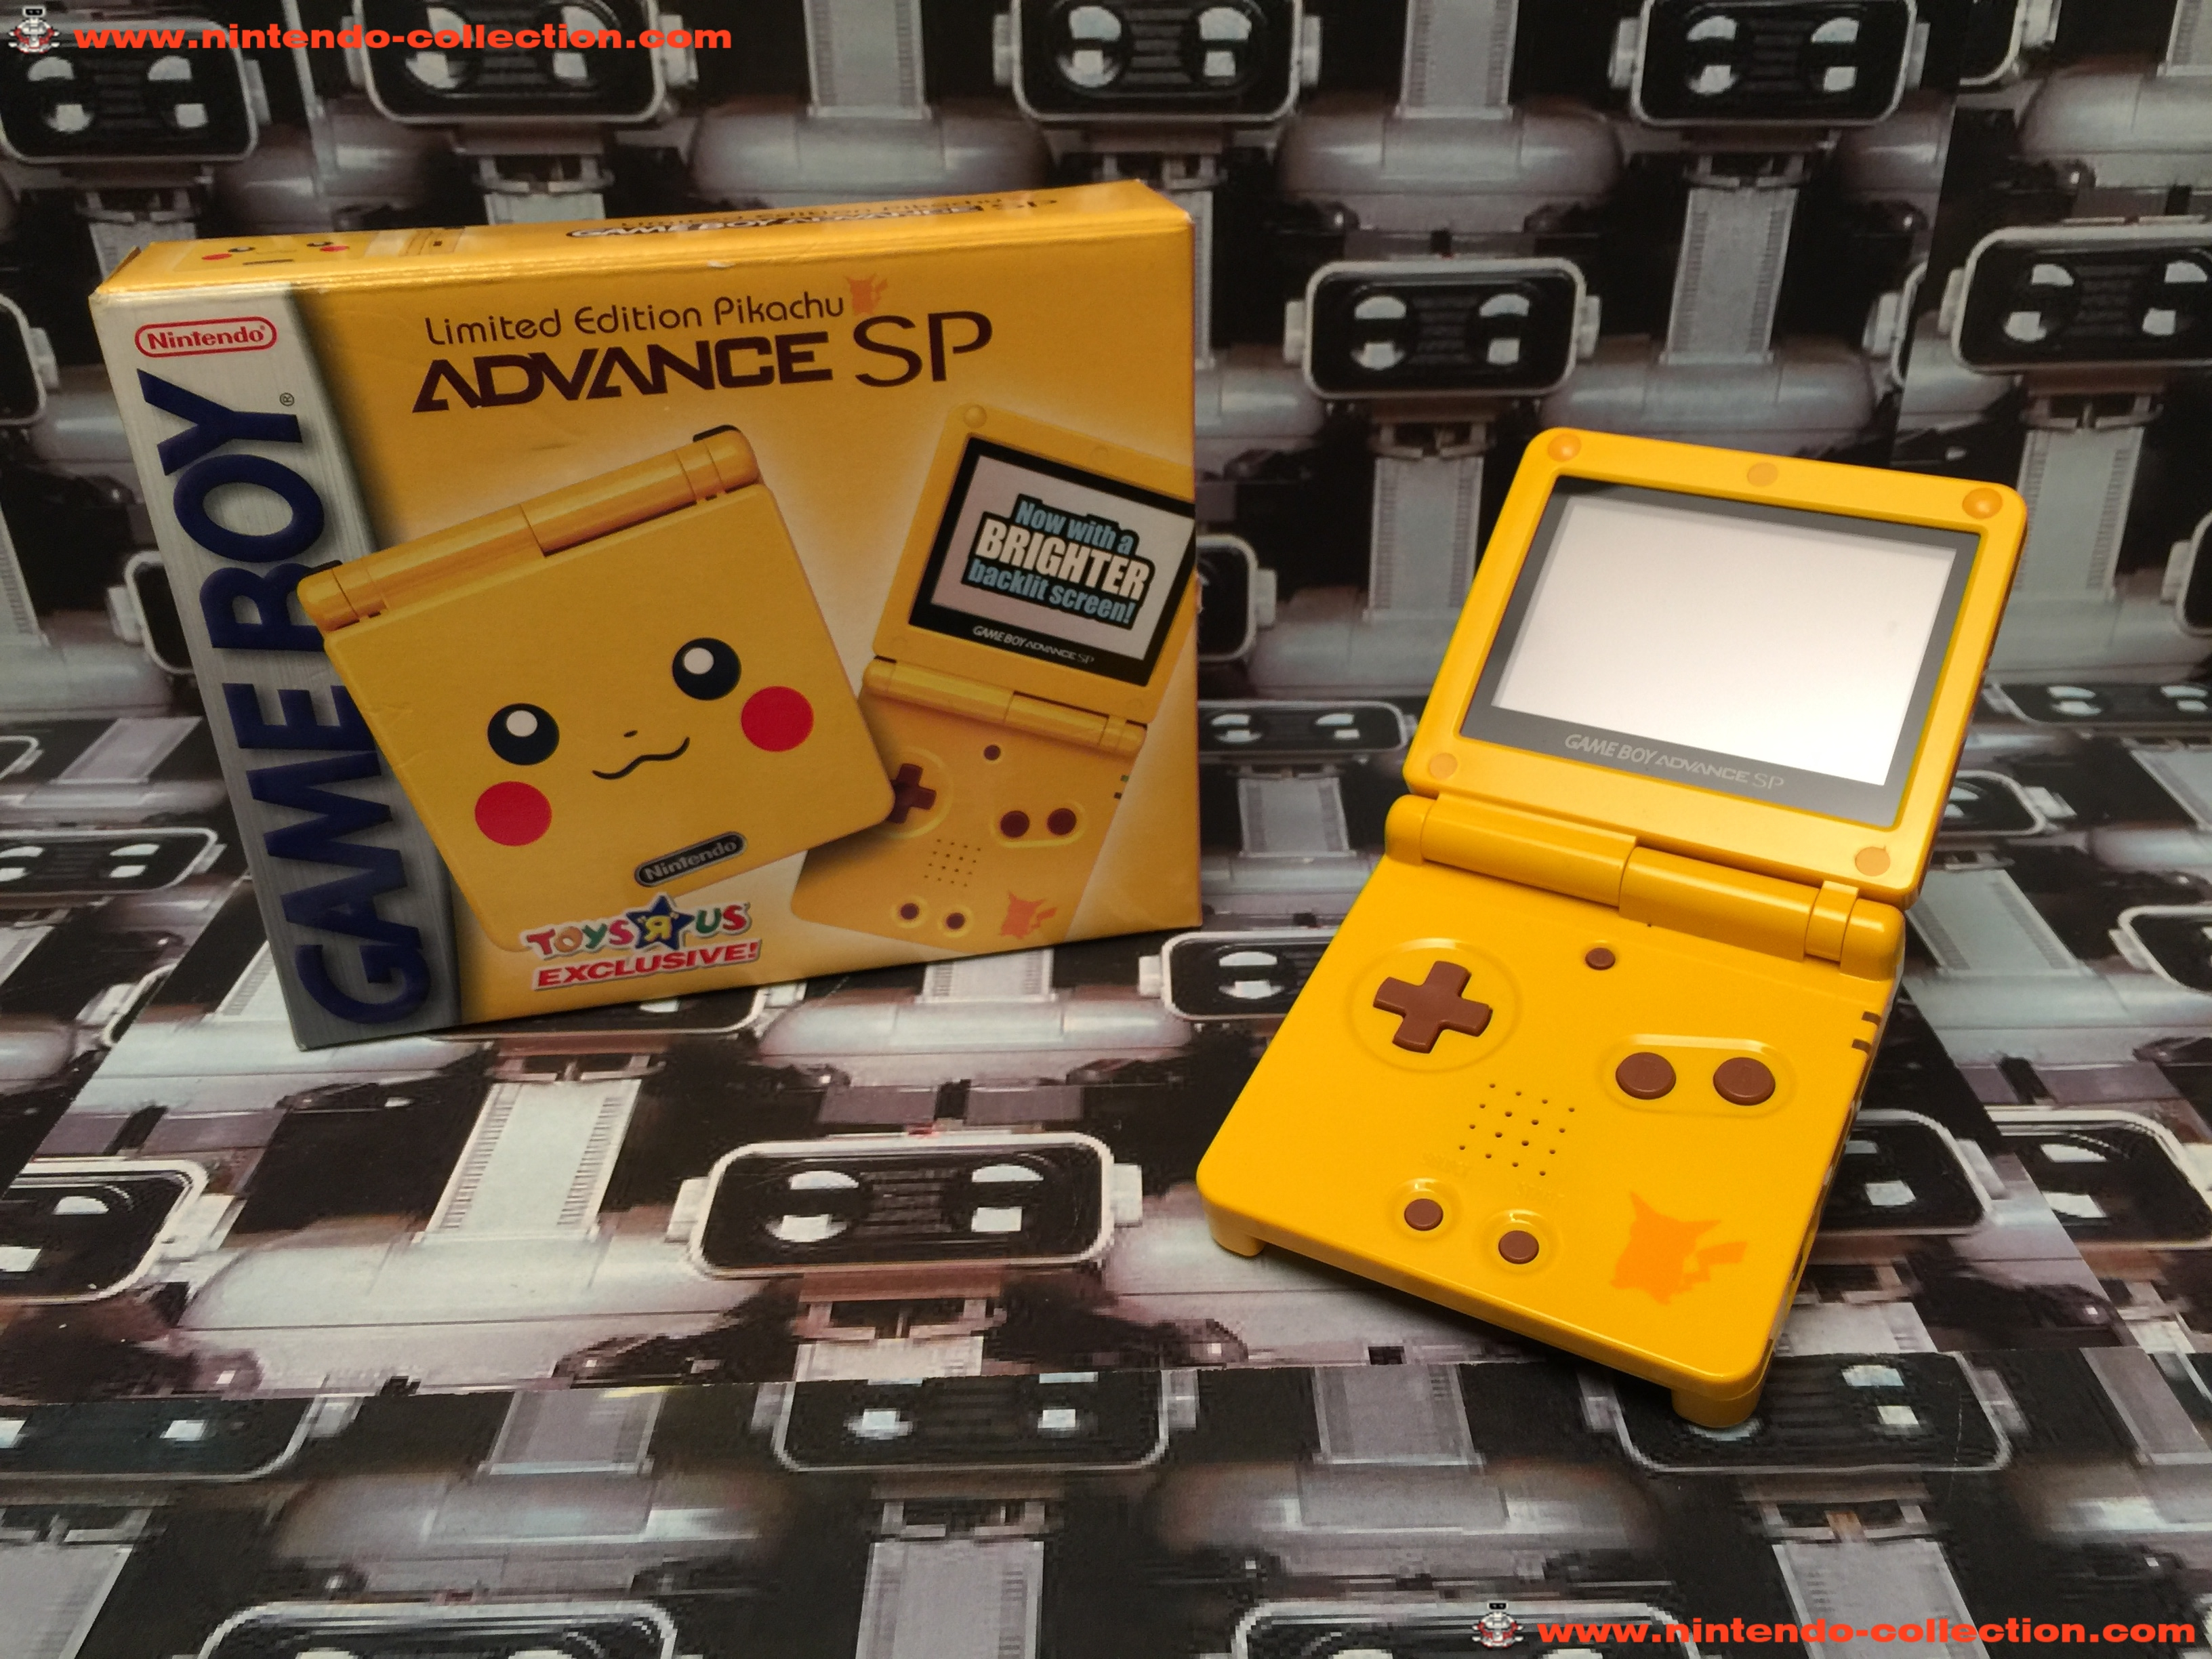 www.nintendo-collection.com - Gameboy Advance GBA SP Pikachu Limited Edition Toy R US ToyRus Exclusi